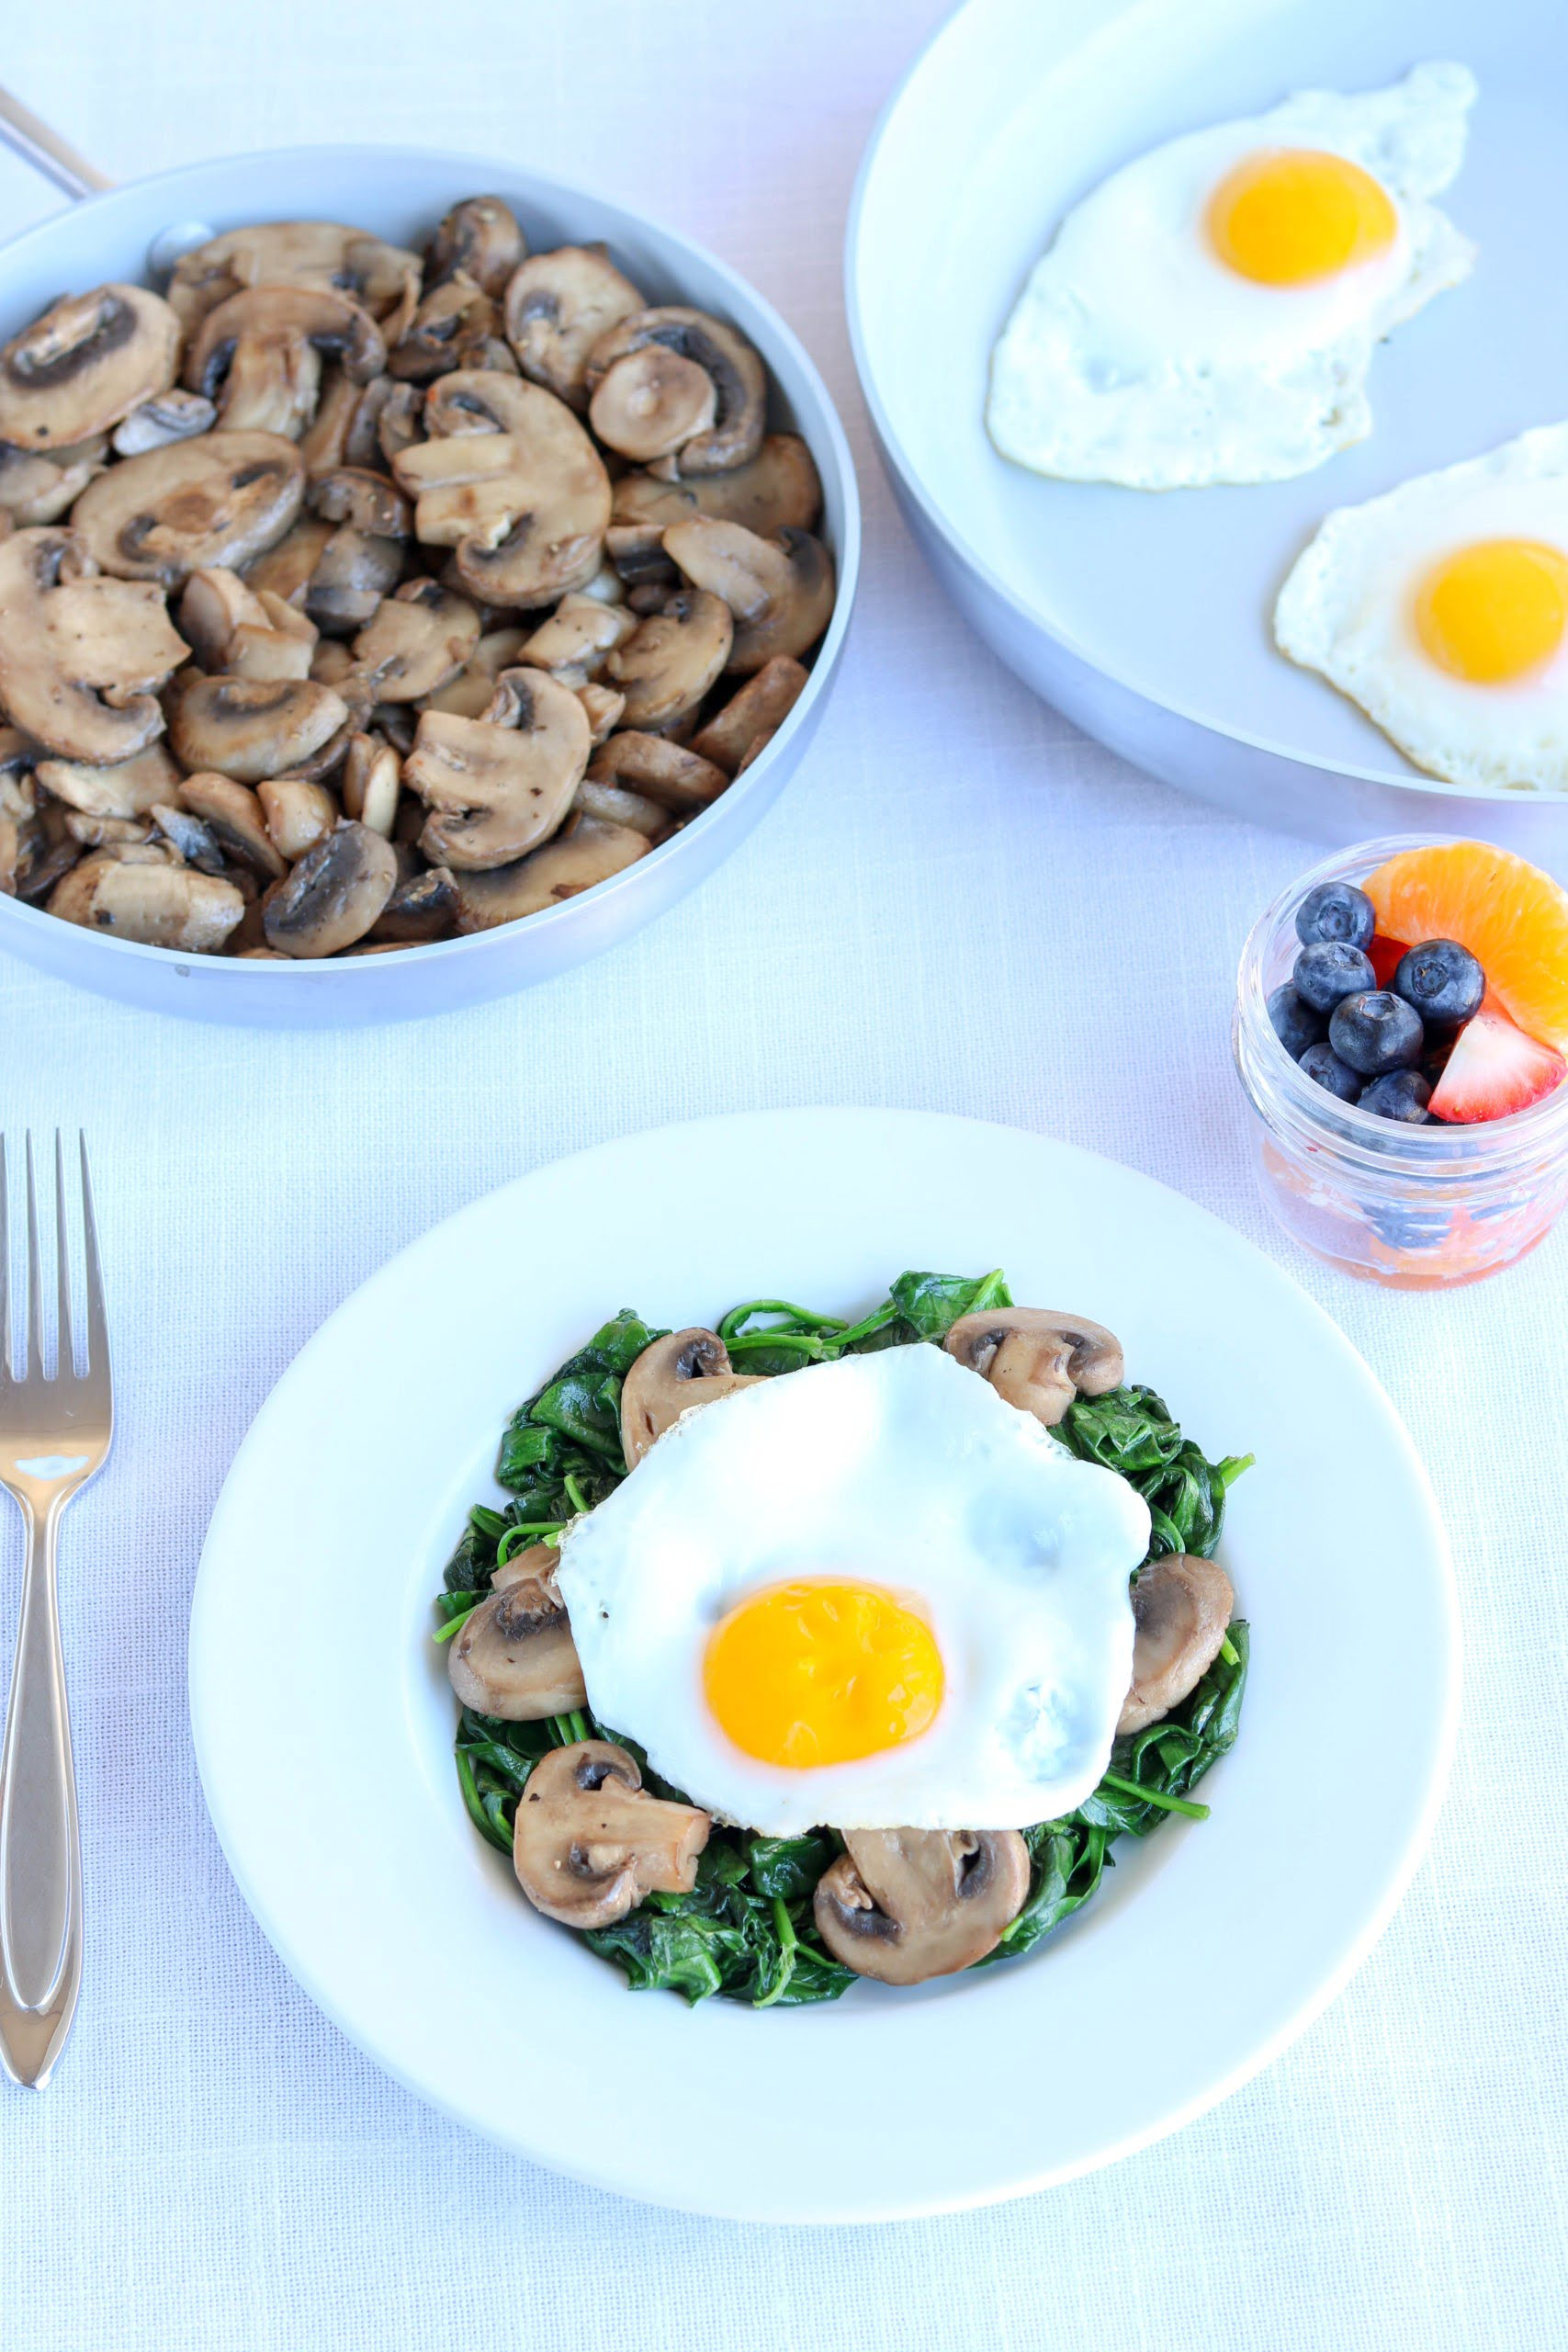 Sauteed Mushrooms with Eggs and Spinach